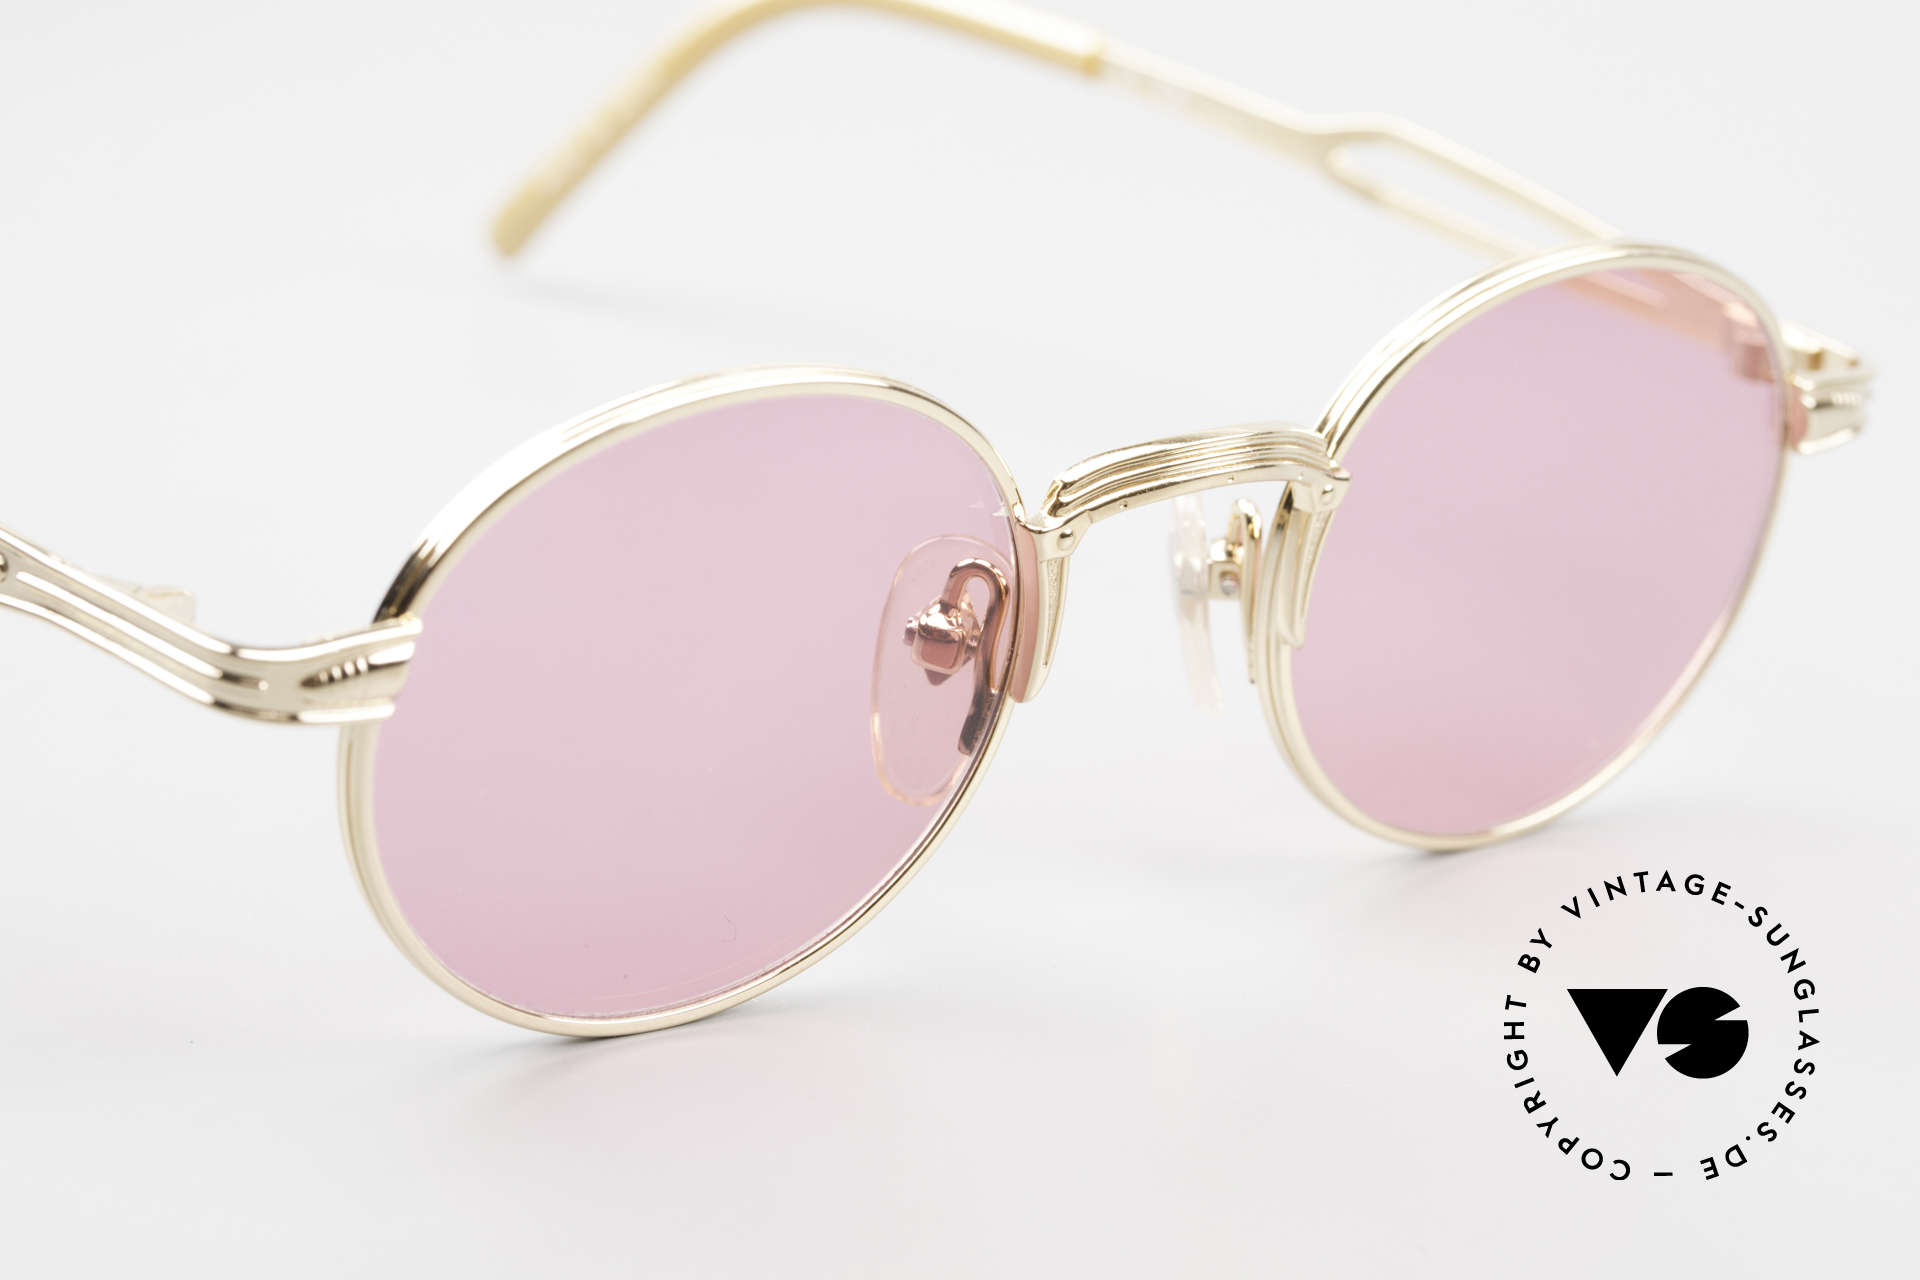 Jean Paul Gaultier 55-7107 Pink Round Glasses Gold Plated, NO RETRO glasses; but a rare ORIGINAL from 1997, Made for Men and Women